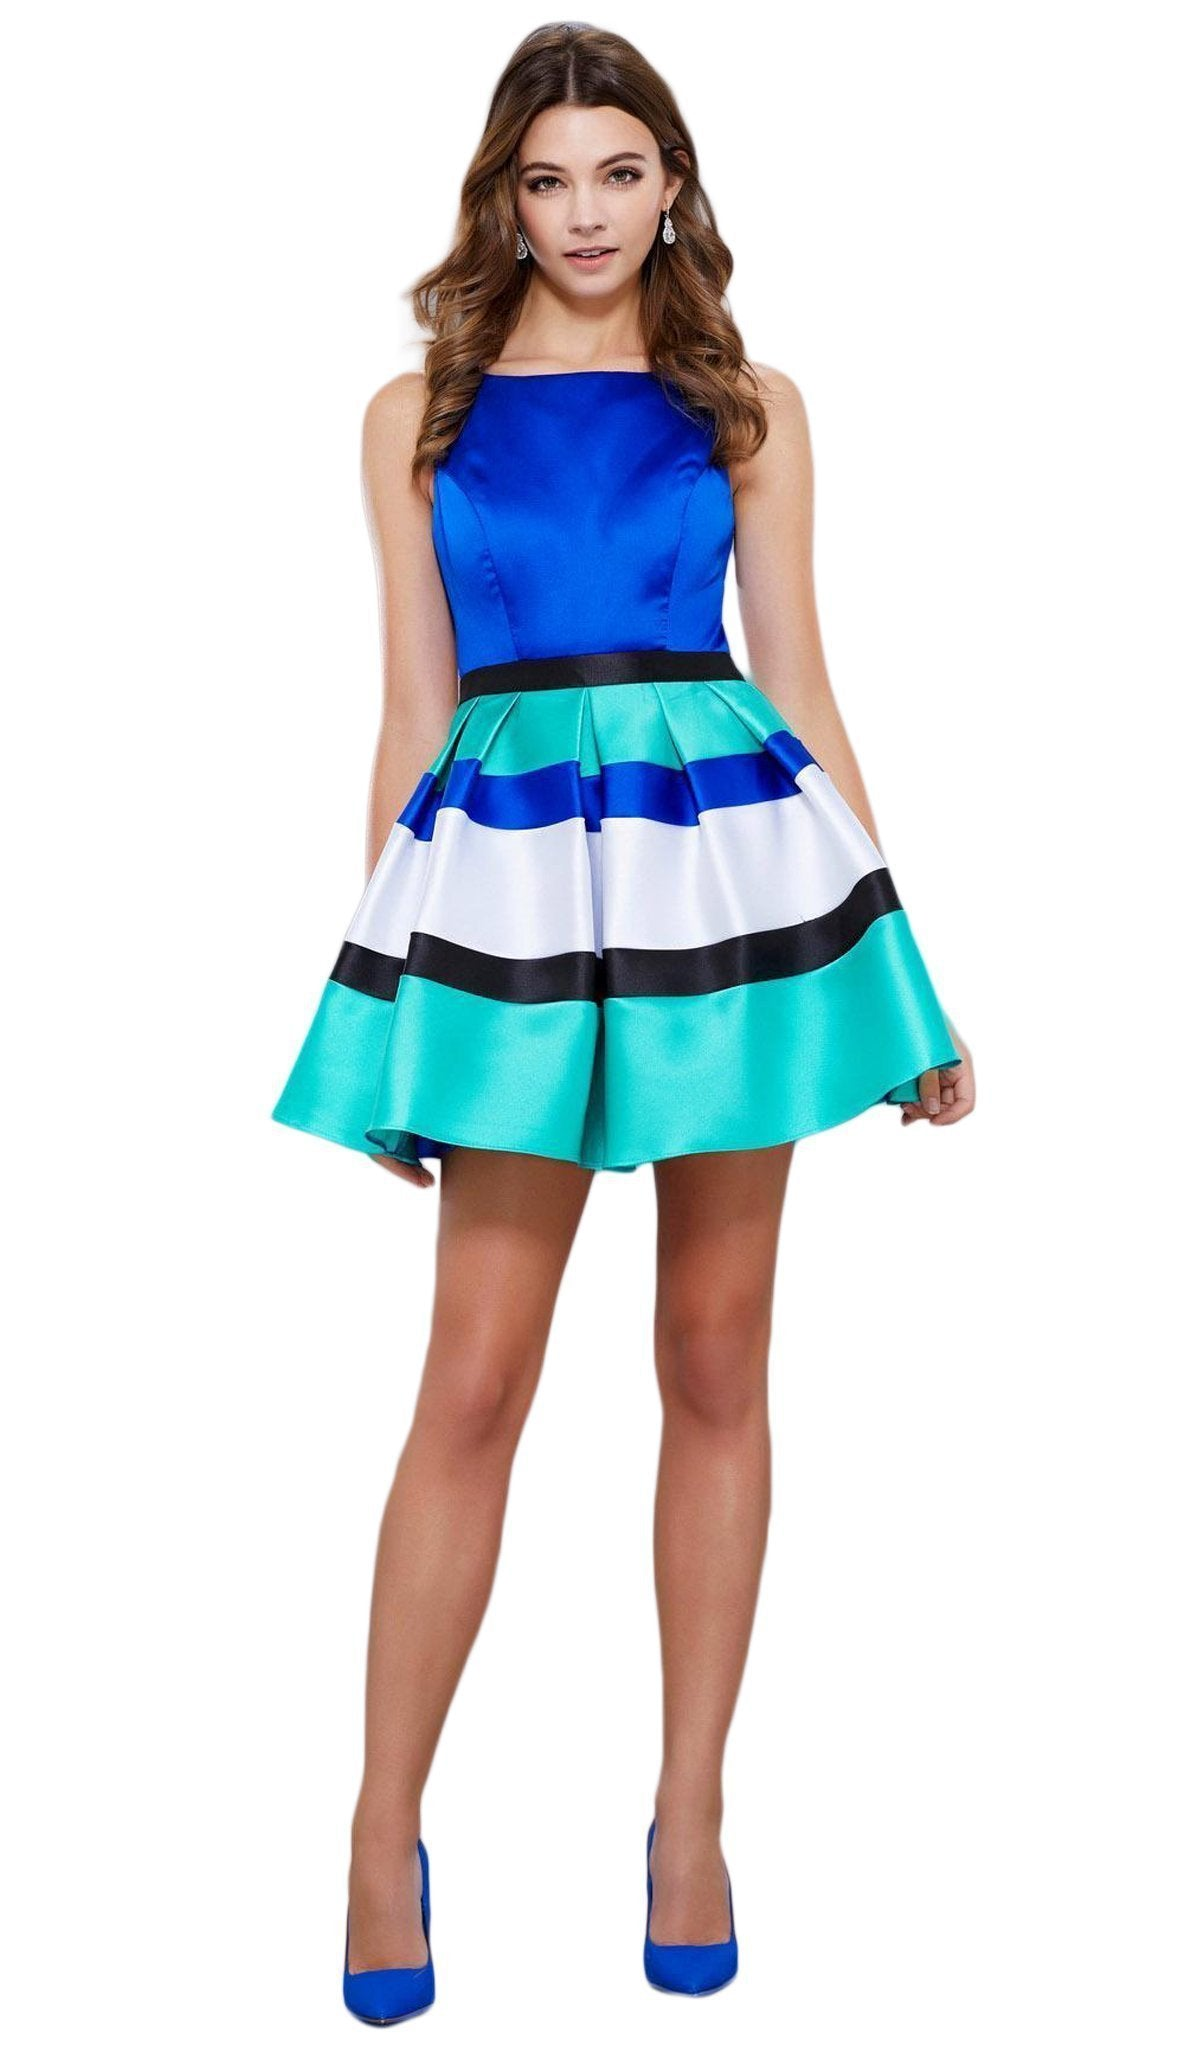 Nox Anabel - Bateau Mikado Short A-line Dress 6282SC